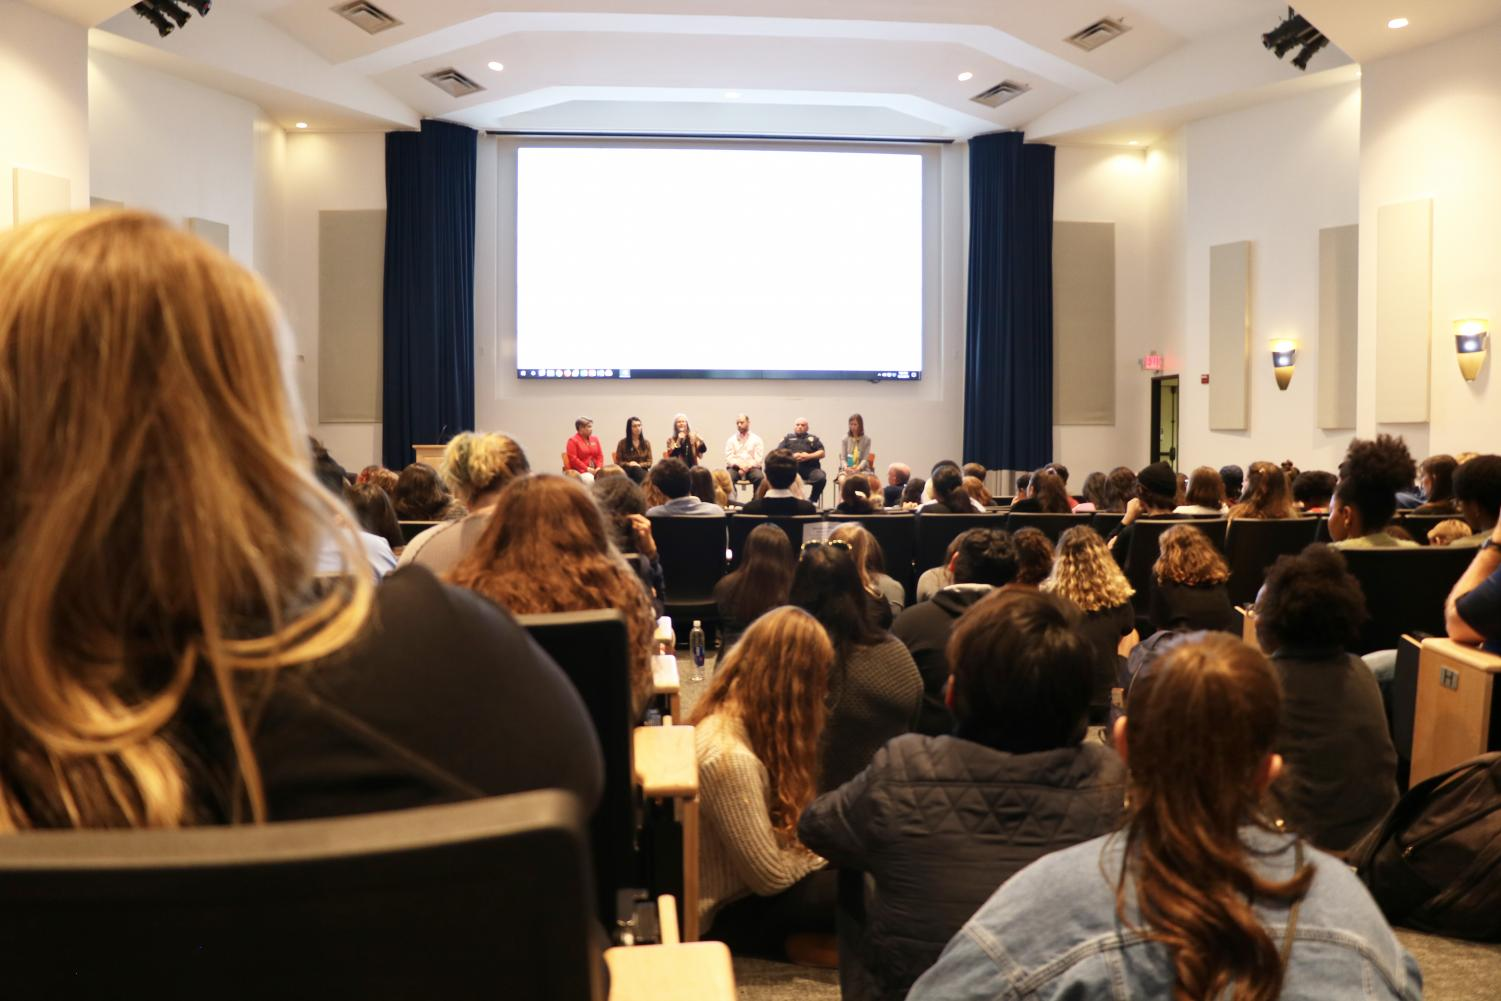 Jones Auditorium filled to capacity following an announcement SGA and IOU made Monday. Attendees sat on the floor and stood at the back of the room due to overflow.